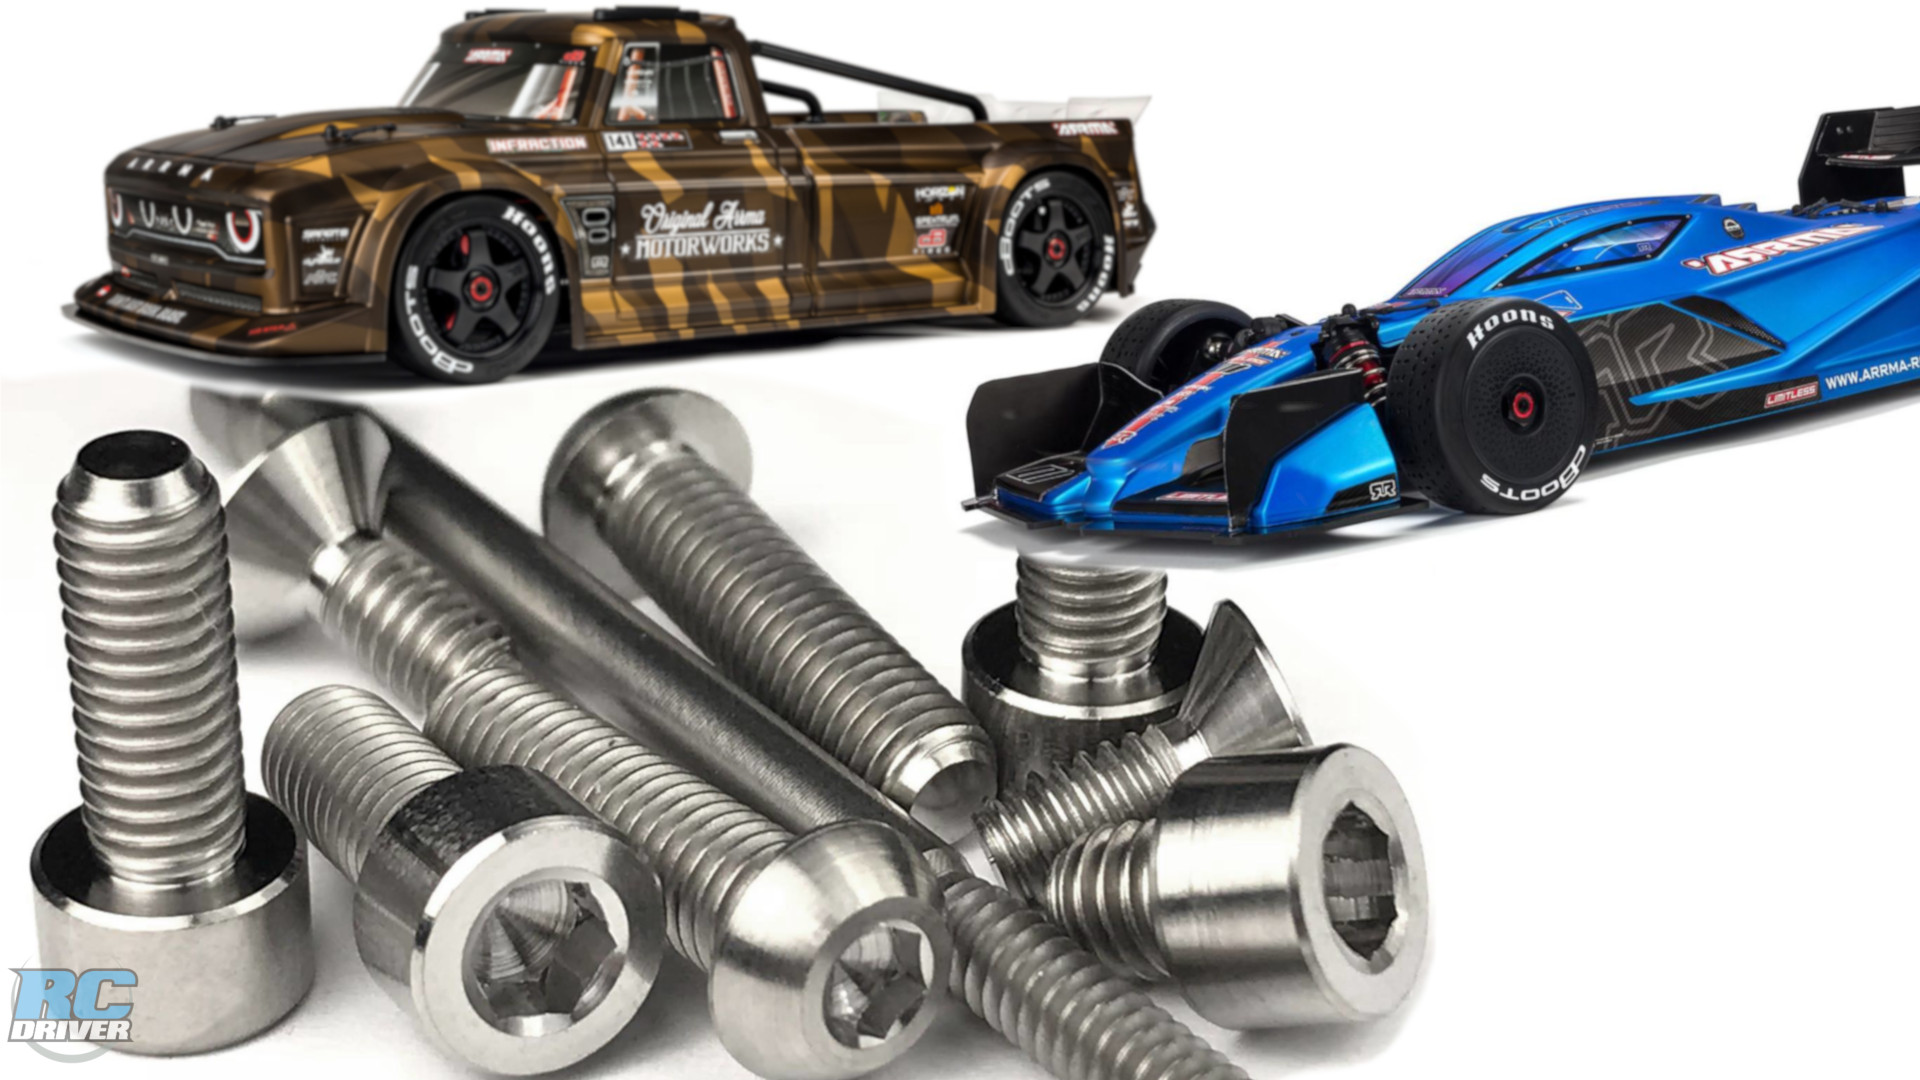 Lunsford Titanium Screw Kits for Arrma Infraction and Limitless